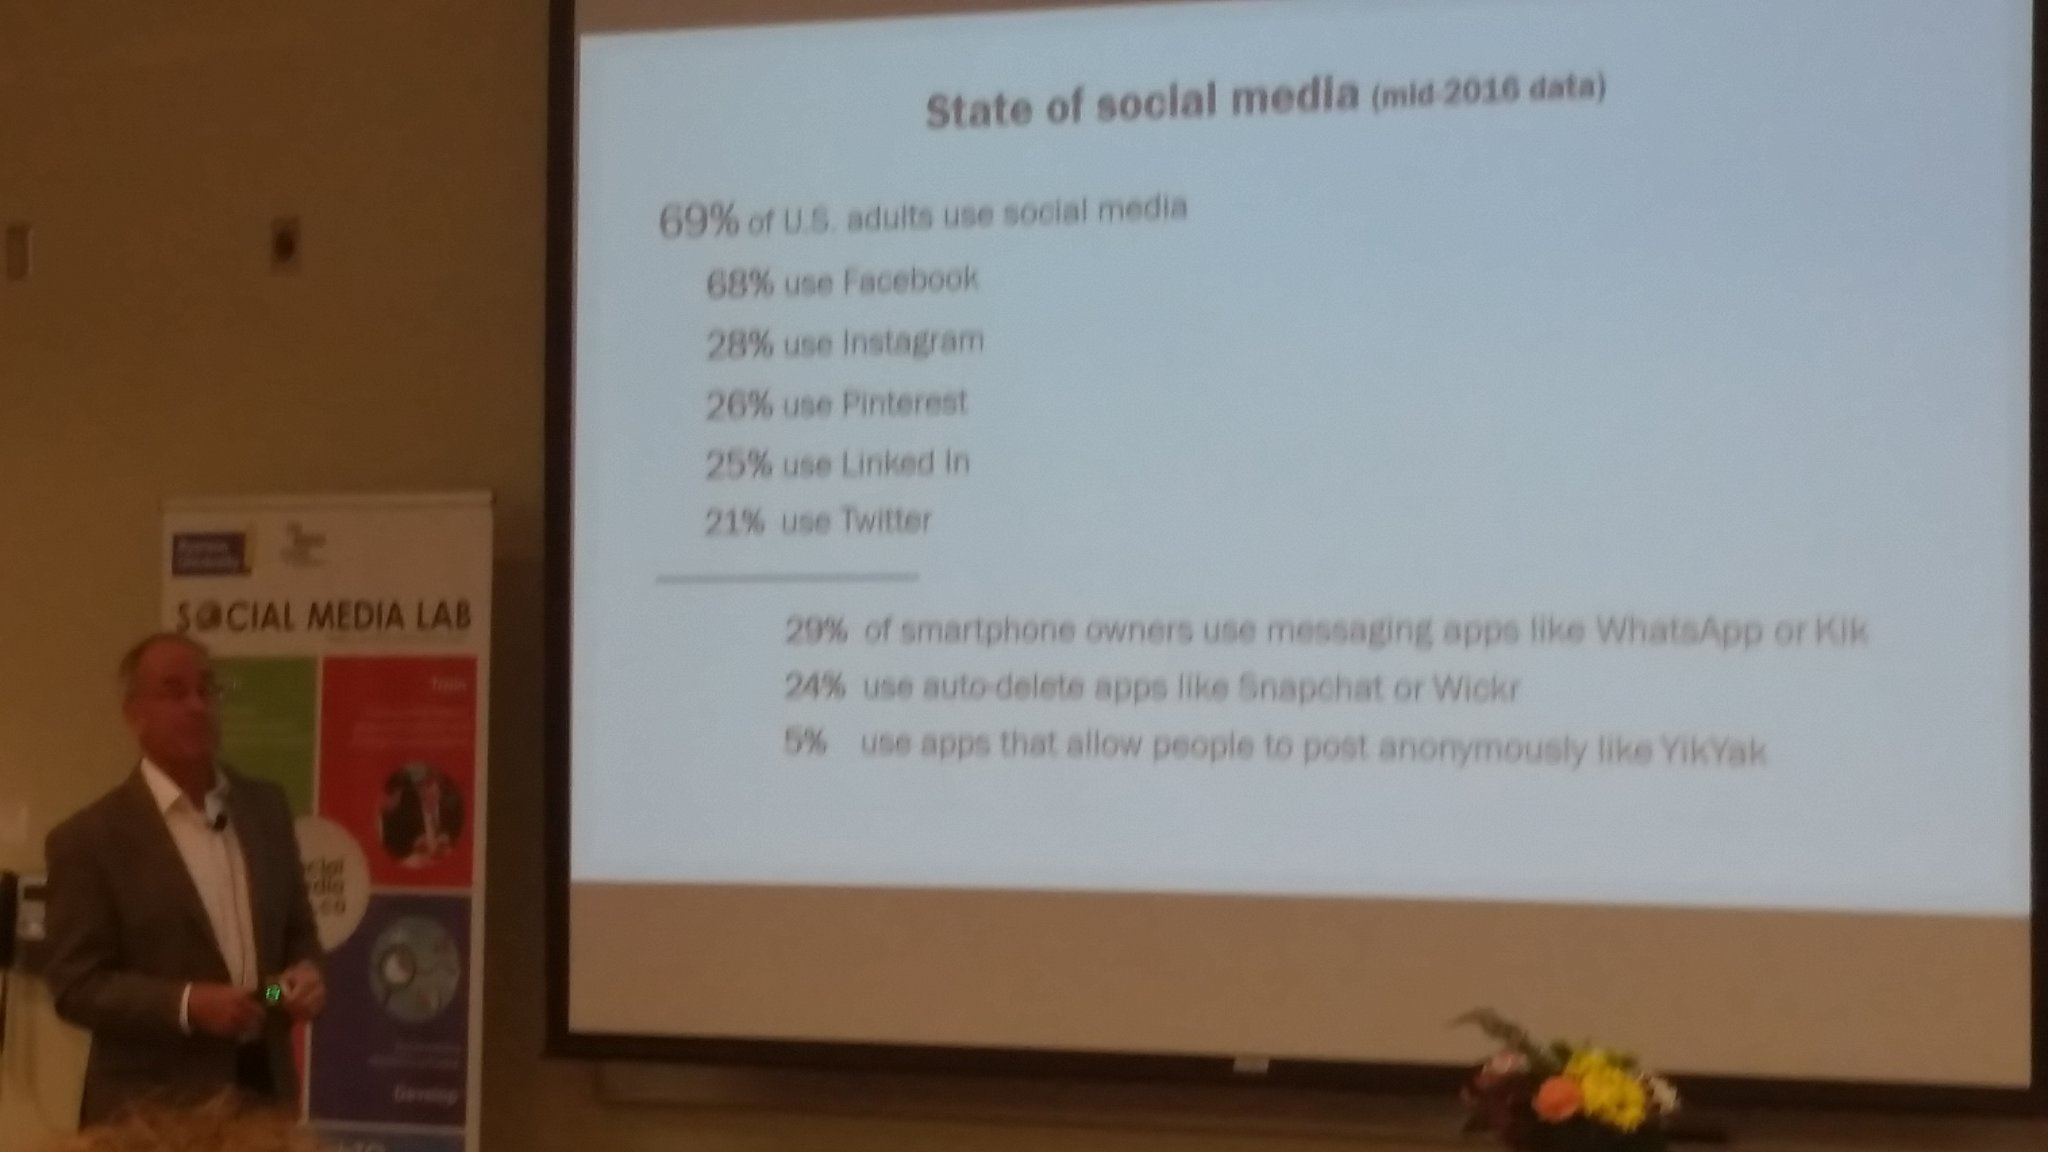 @lrainie more than 2/3 of US adults use social media #SMSociety https://t.co/r049kvGdSU